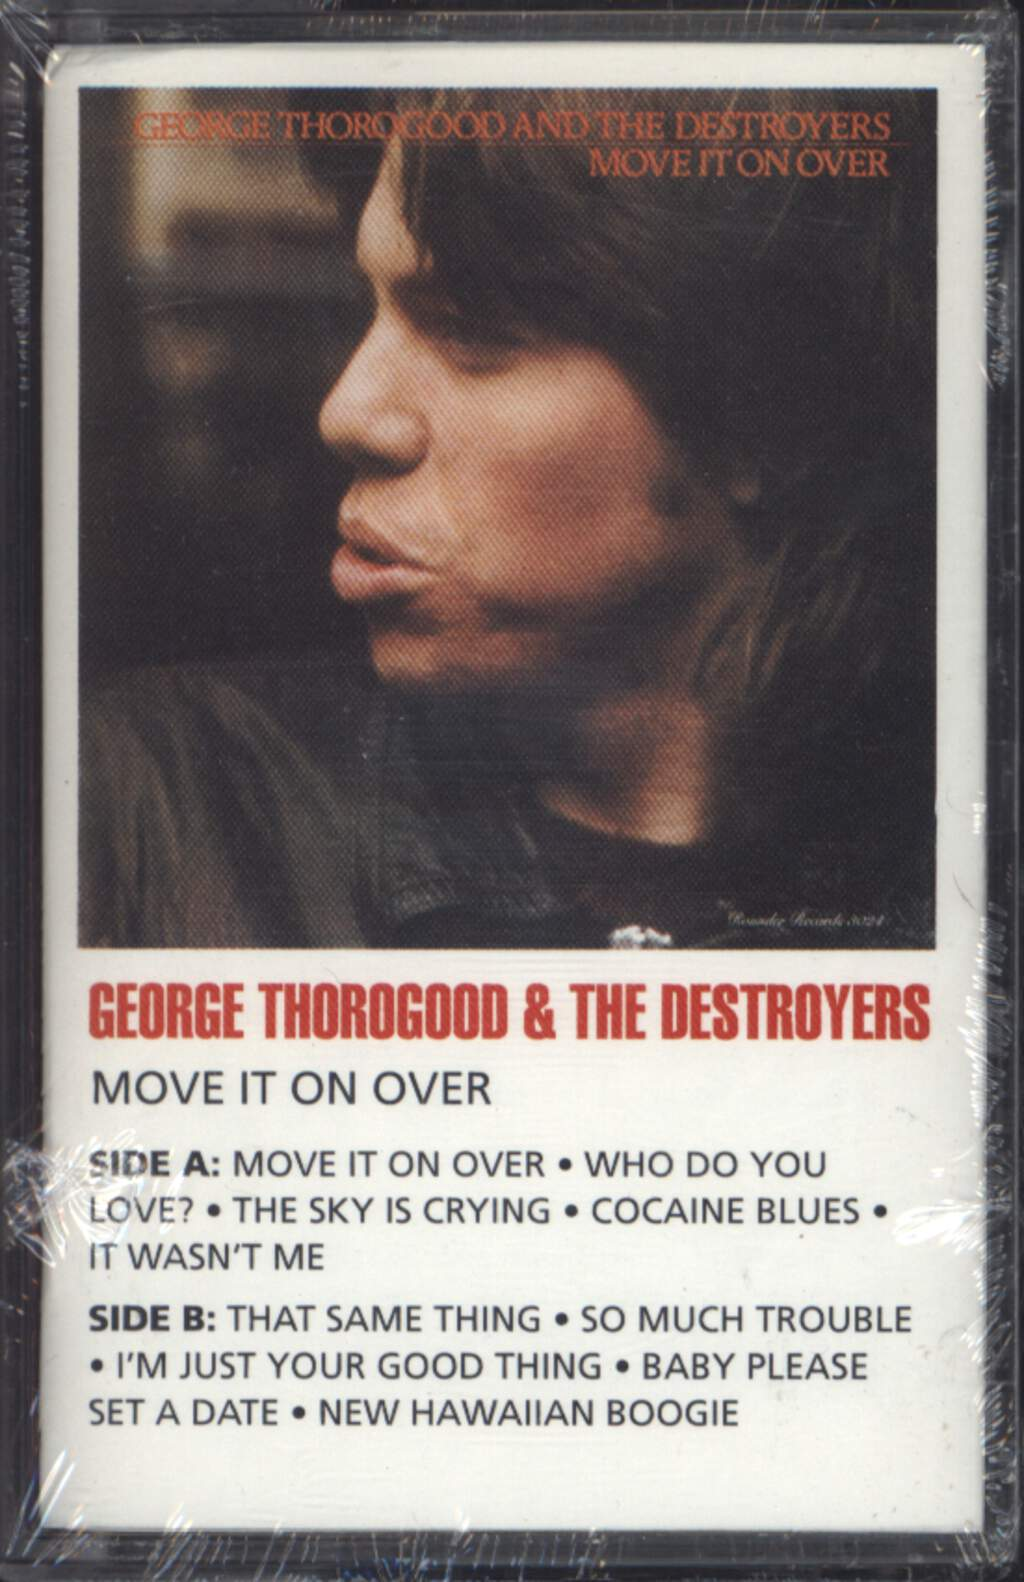 George Thorogood & The Destroyers: Move It On Over, Compact Cassette